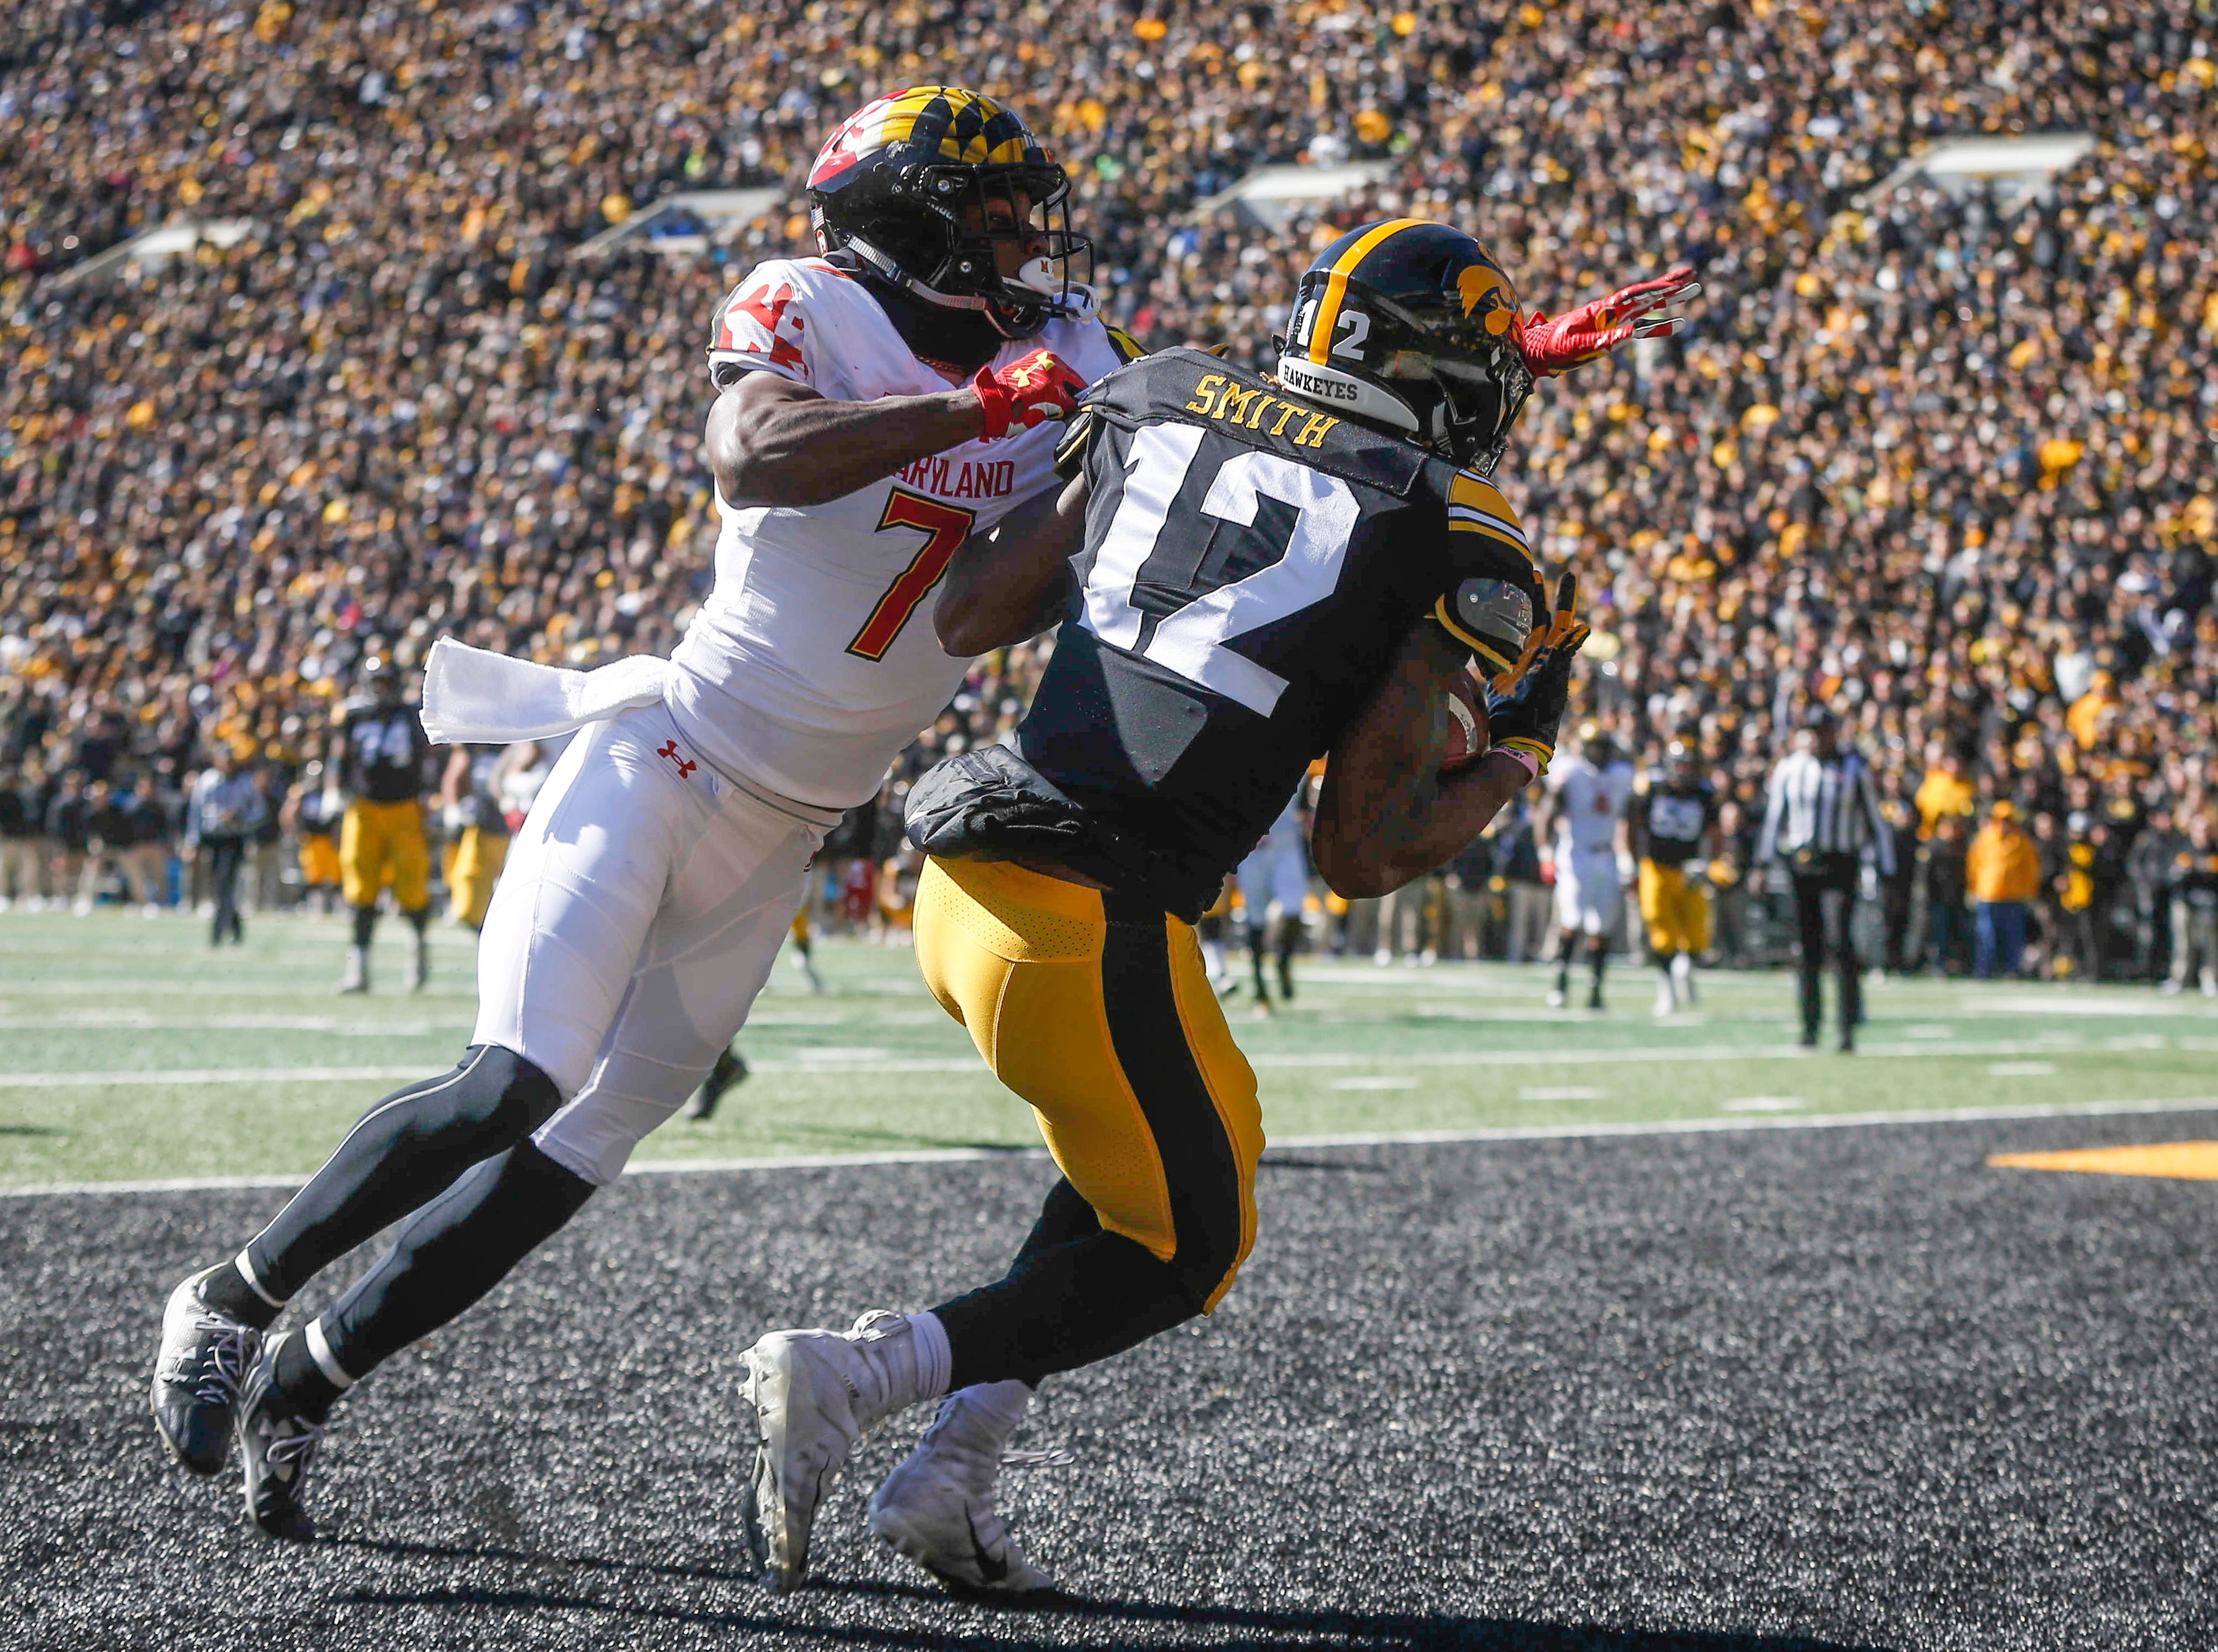 Iowa's Brandon Smith pulls in a touchdown pass in the end zone against Maryland on Saturday, Oct. 20, 2018, at Kinnick Stadium in Iowa City.